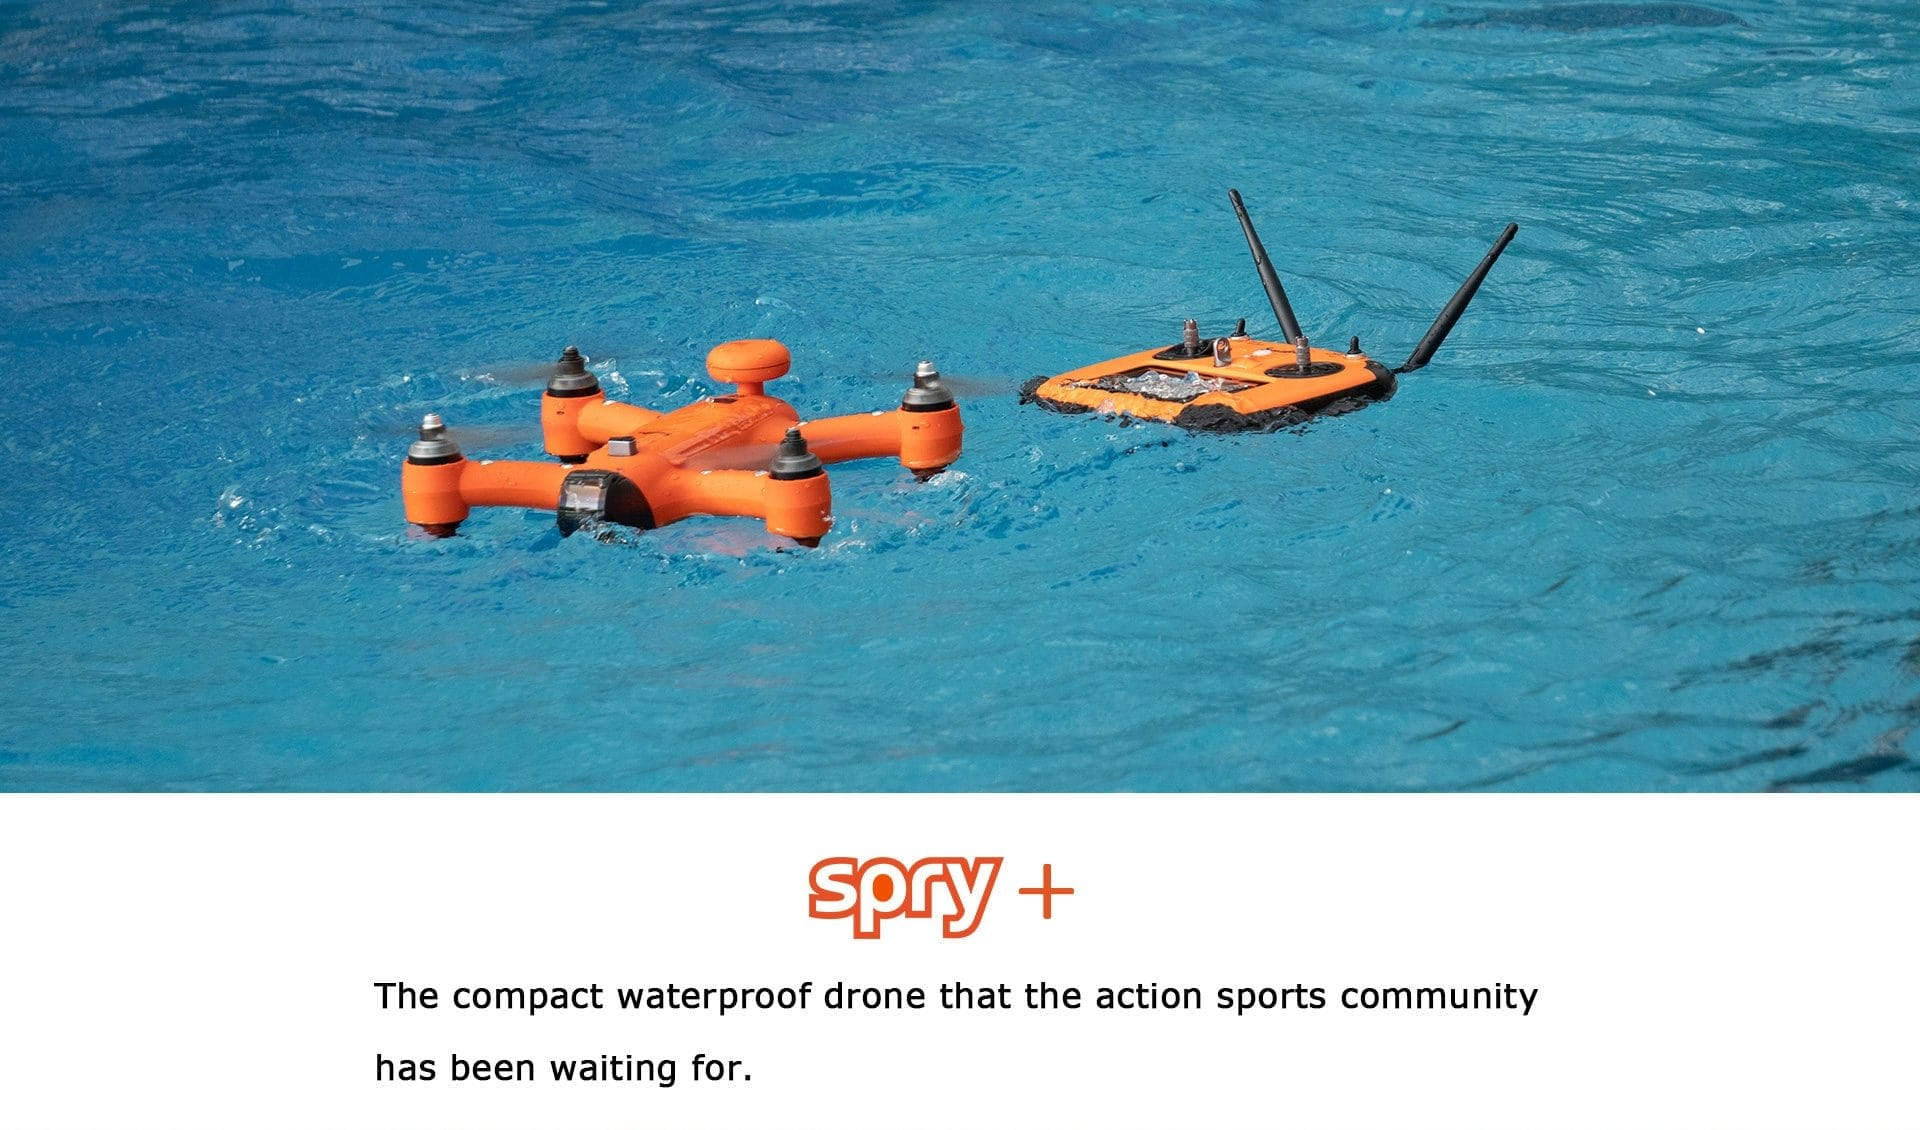 SwellPro - Spry+ Drone